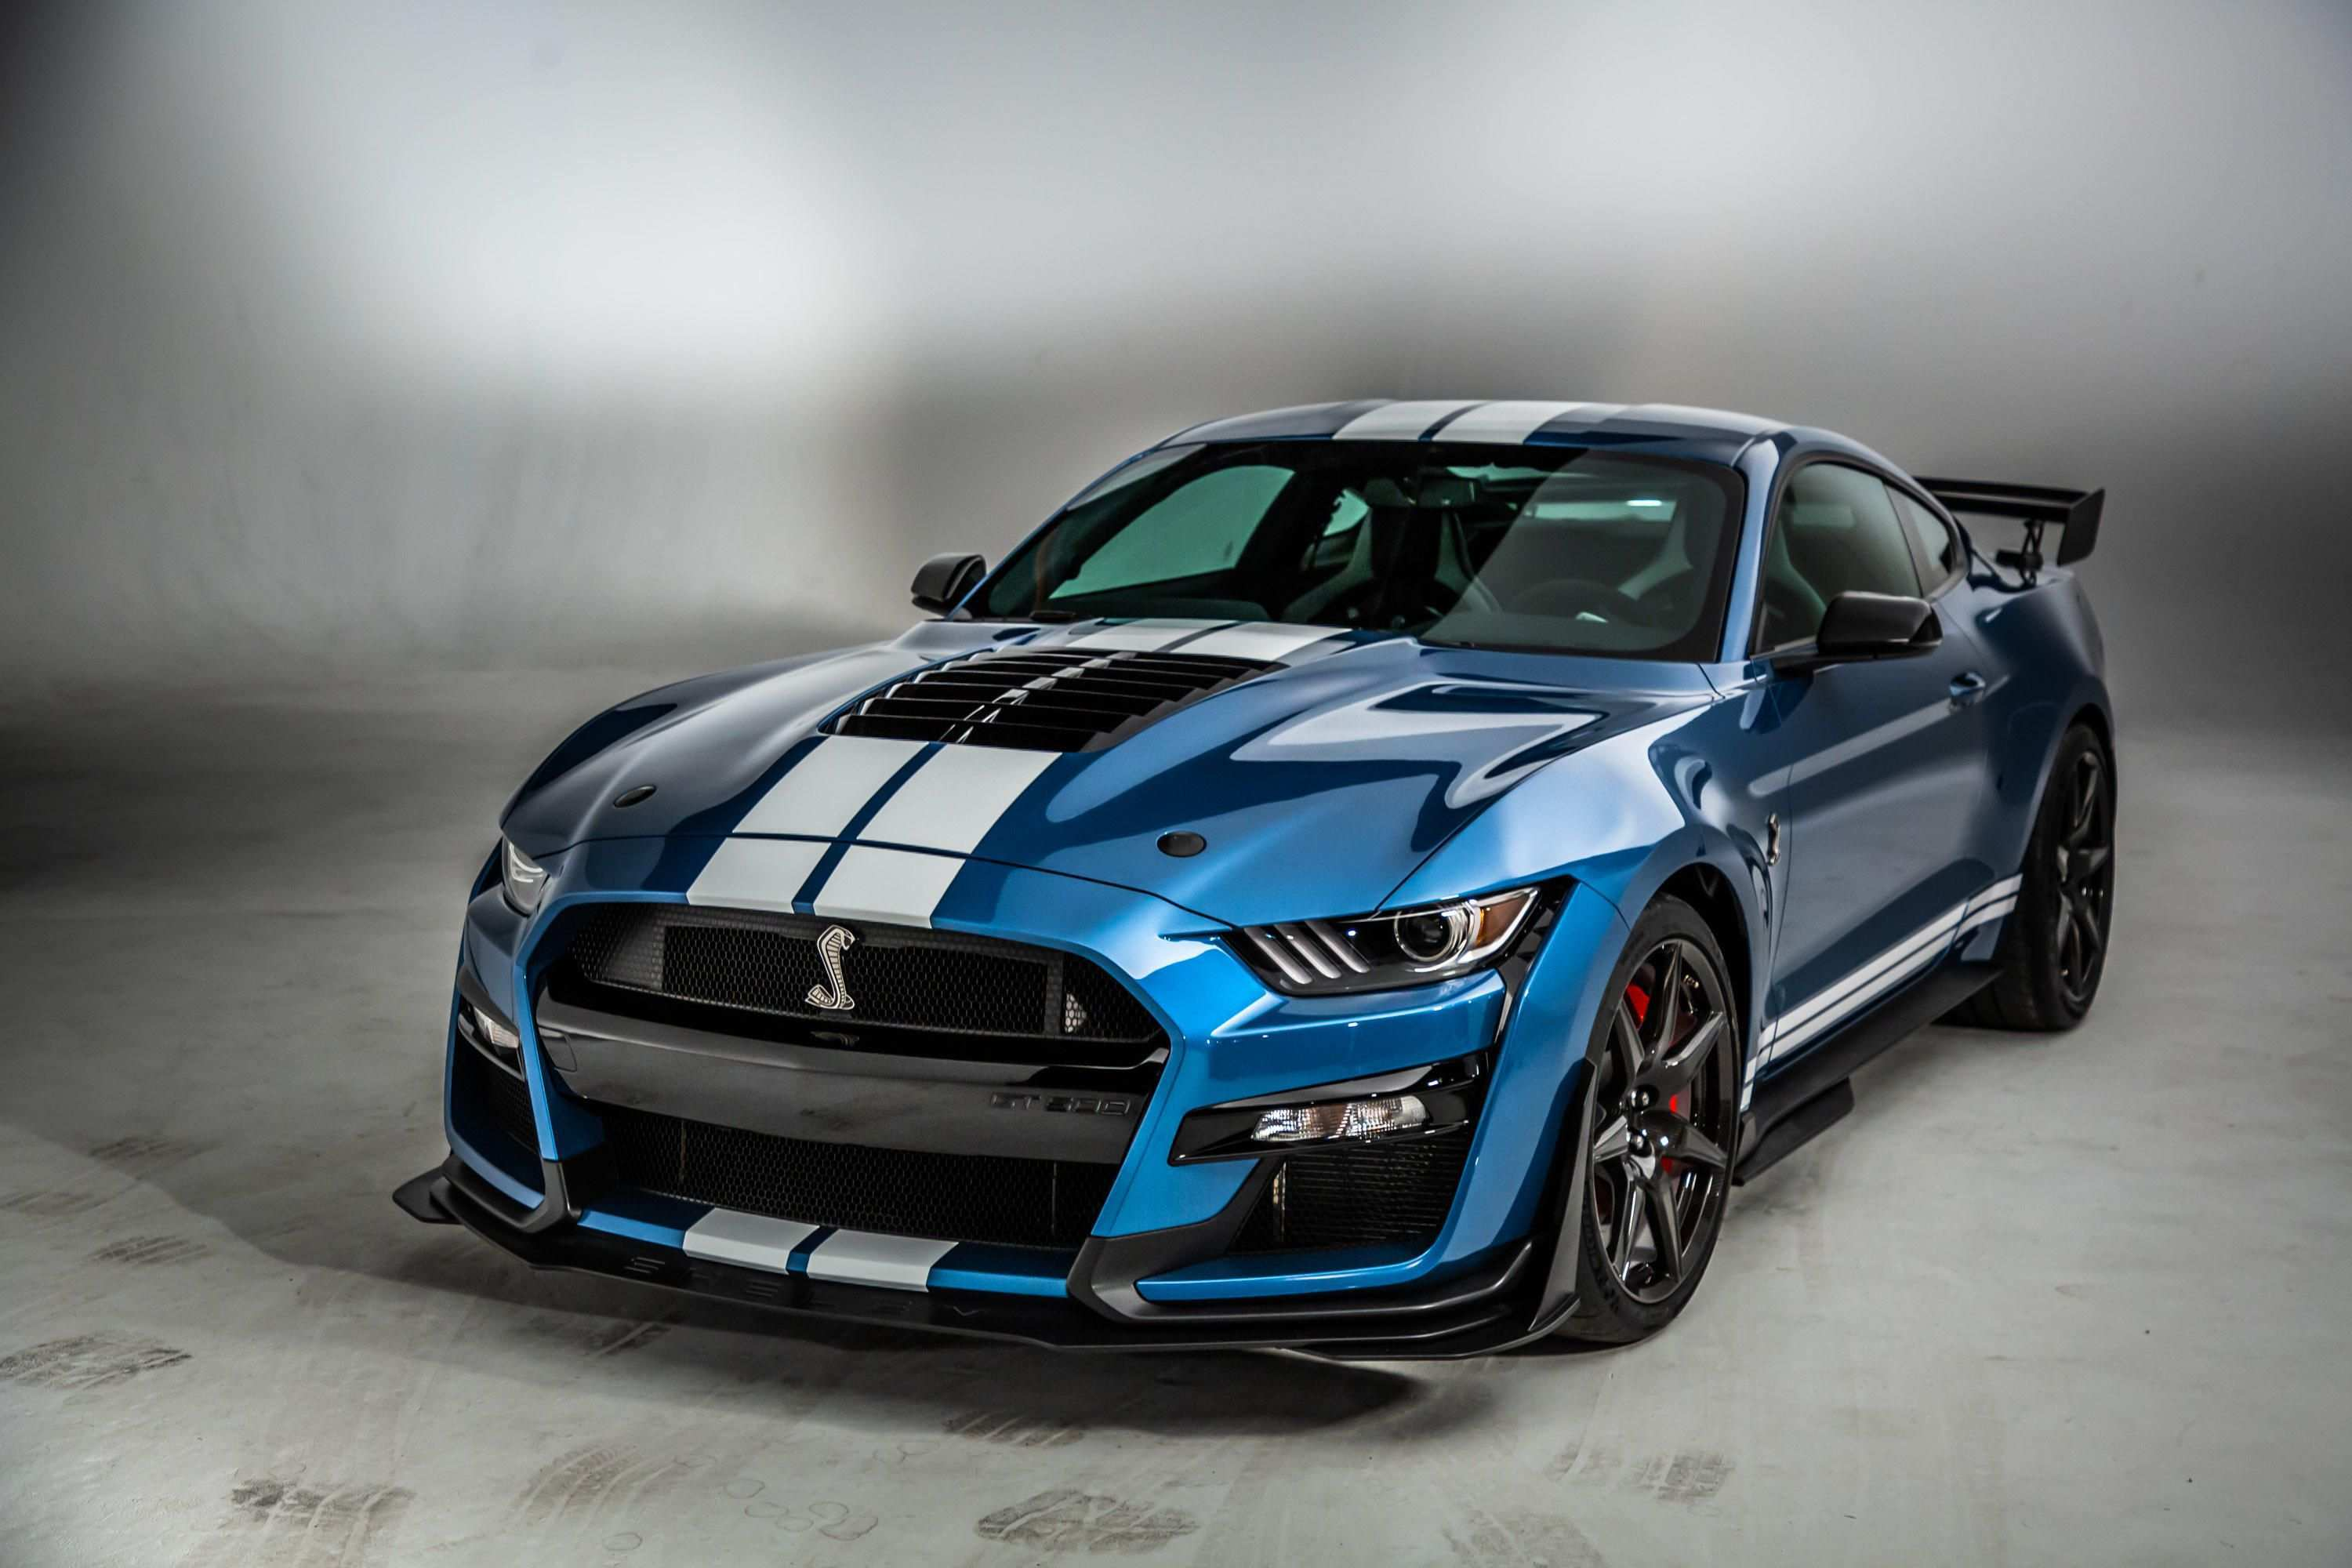 28 The 2020 Ford Mustang Images Speed Test for 2020 Ford Mustang Images